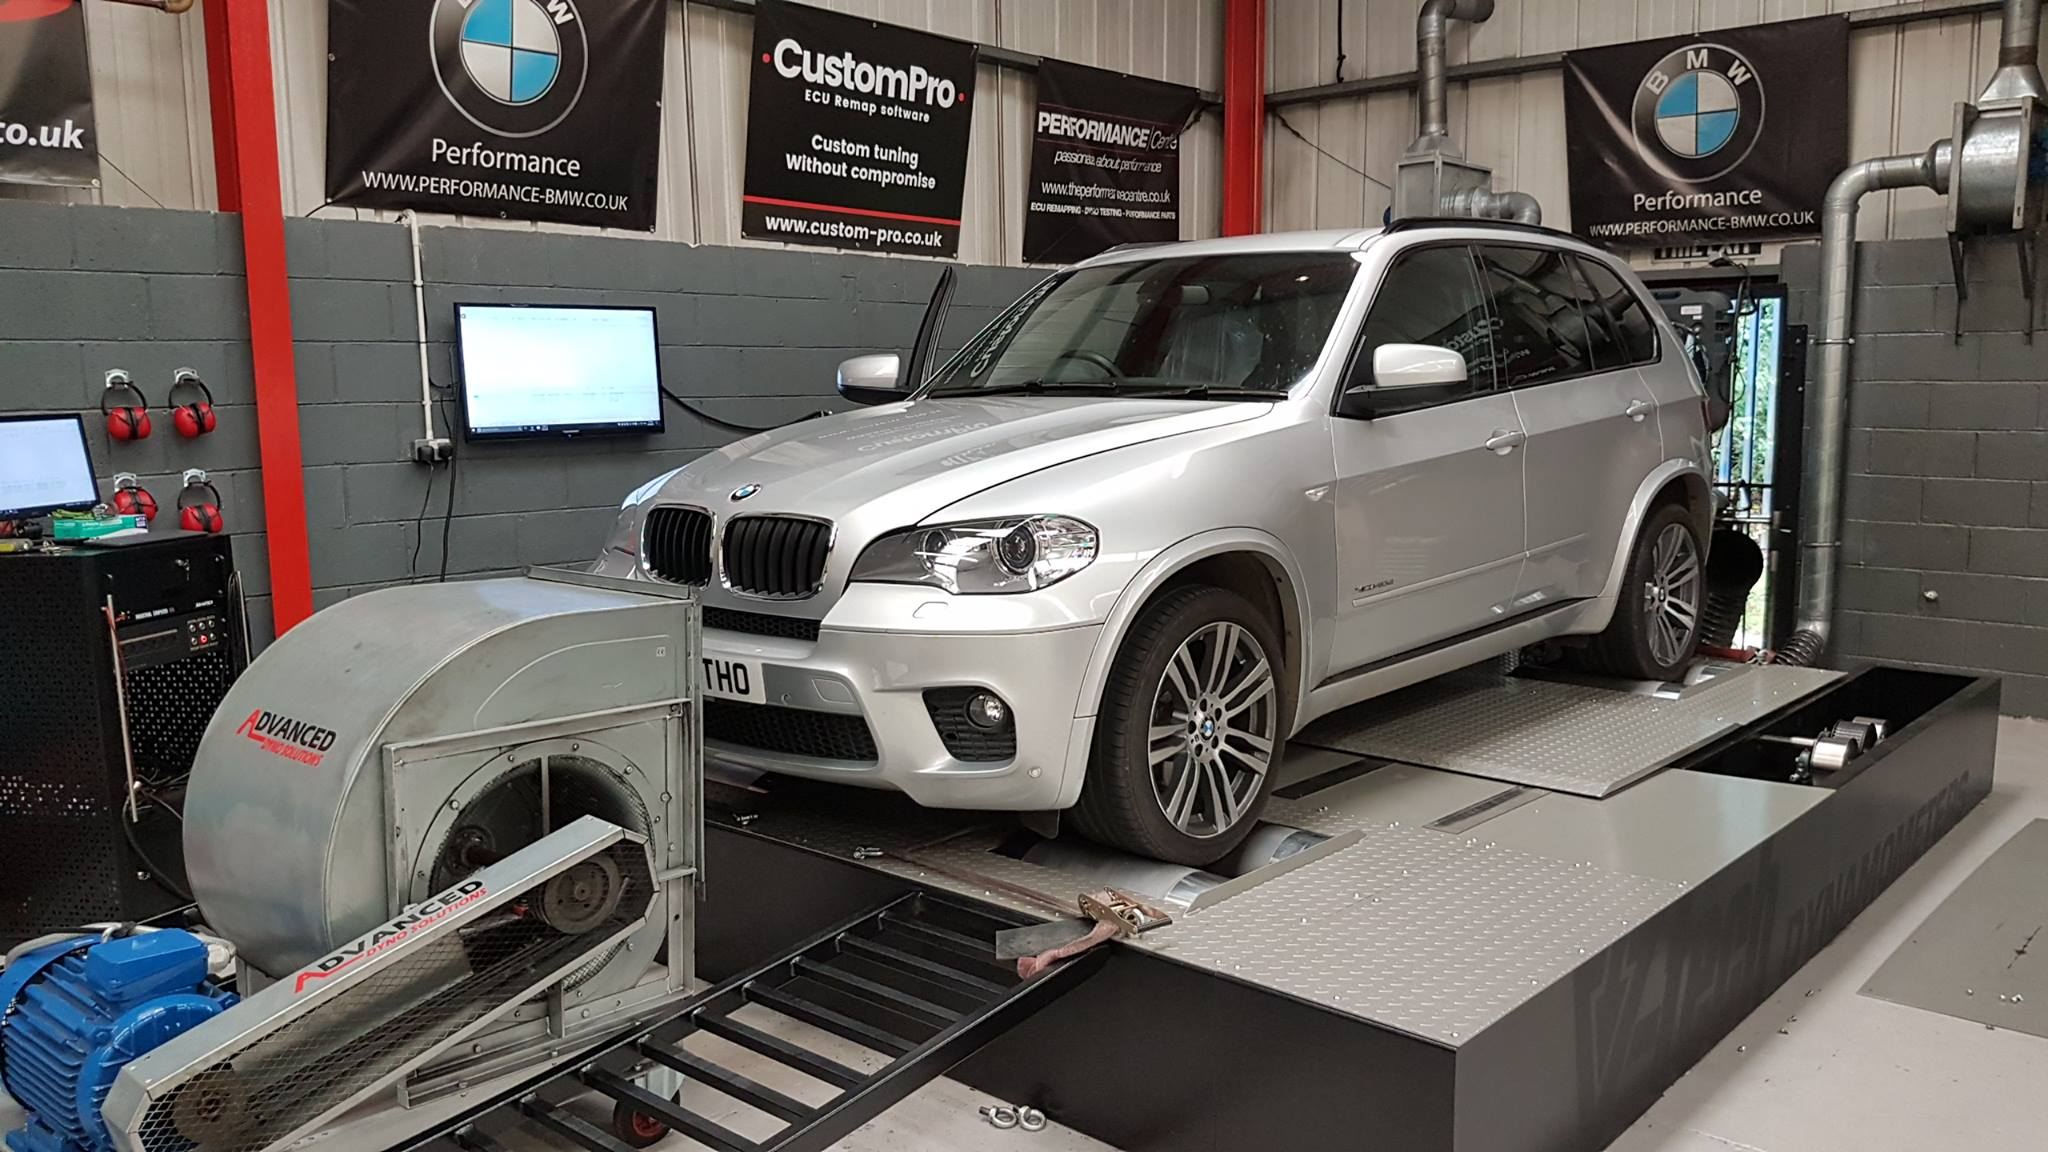 BMW X5 40d - CustomPro remap